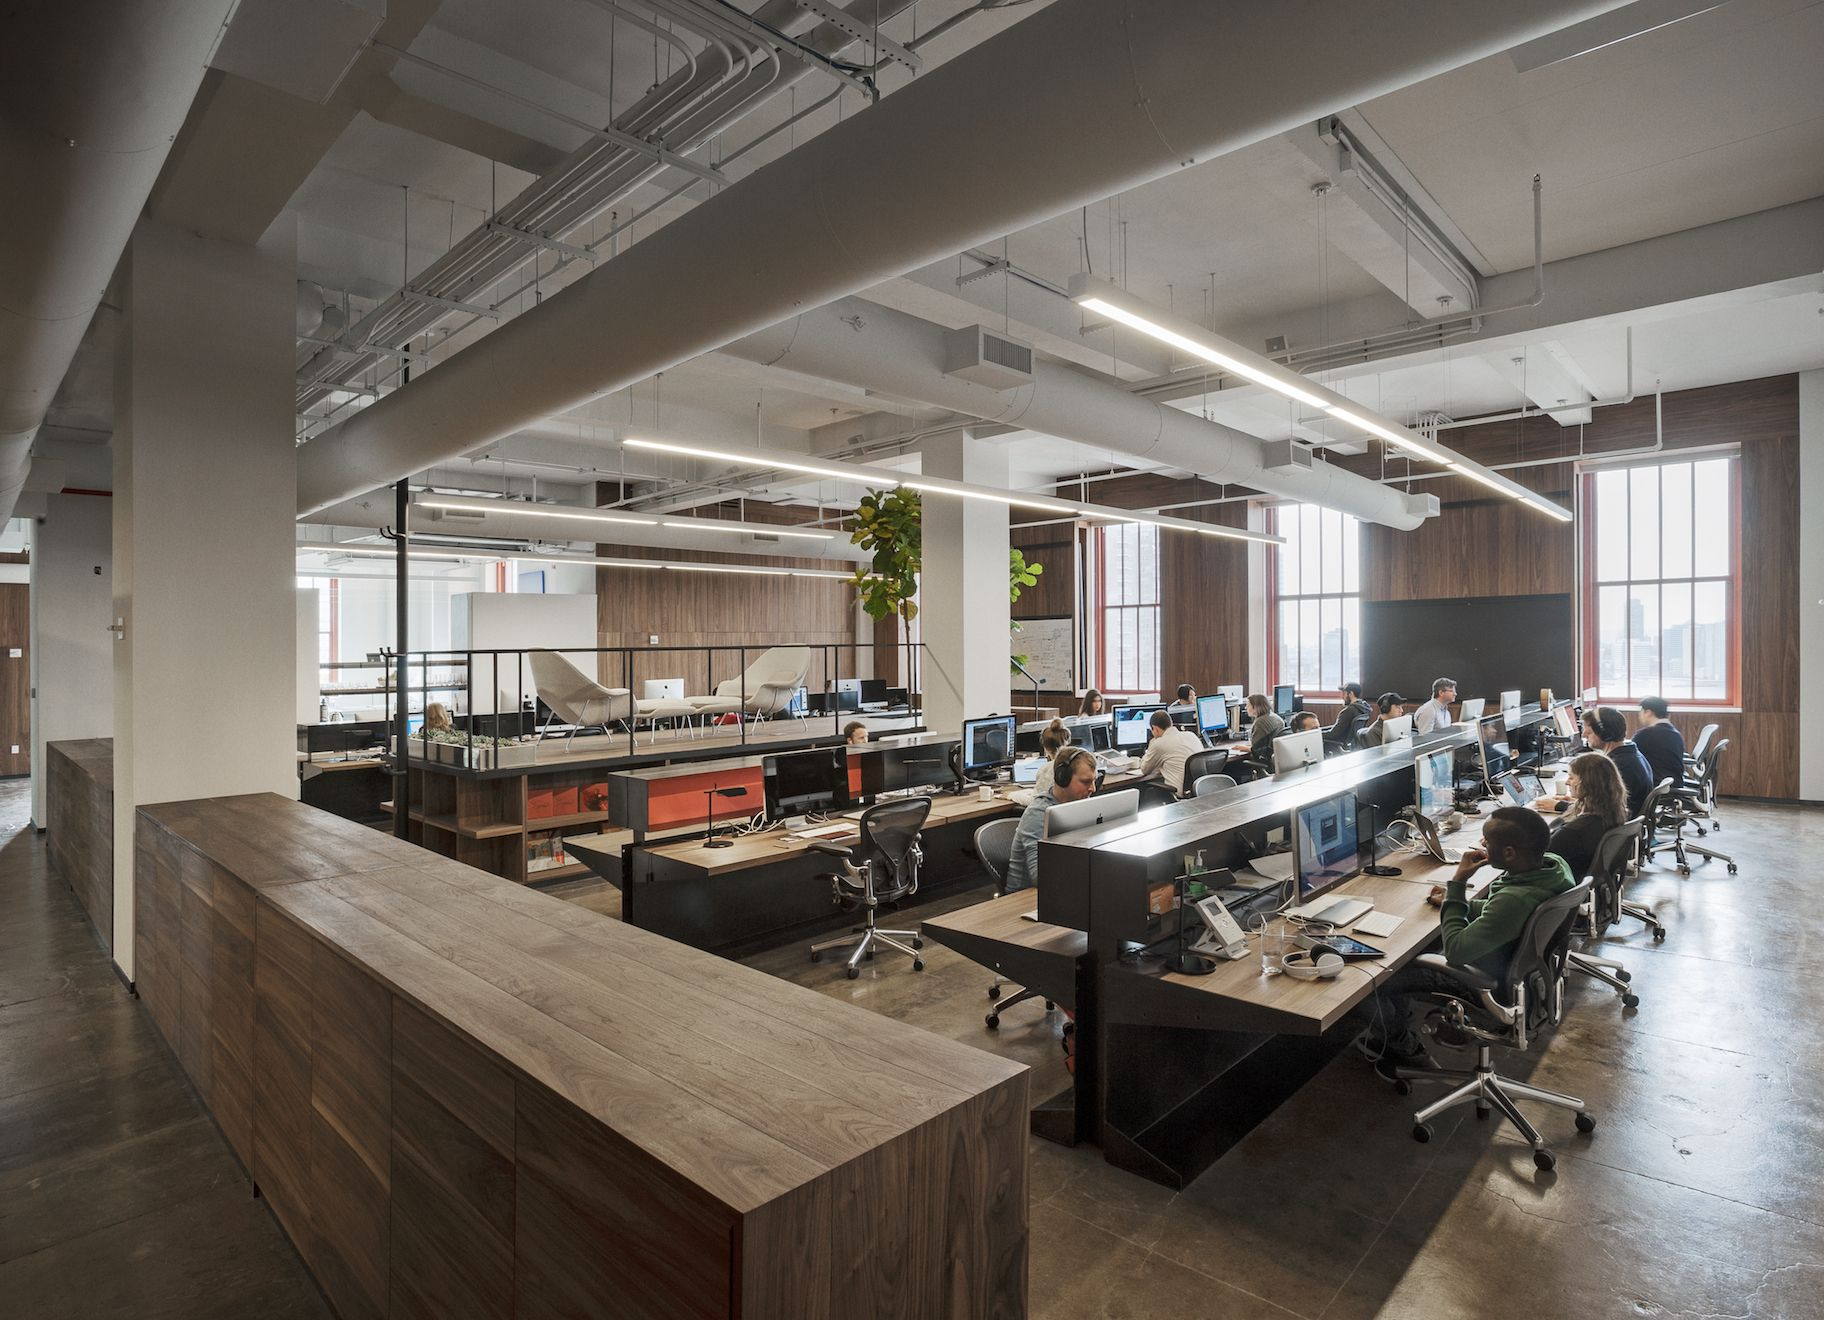 5 | Inside FiftyThreeu0027s Jaw Dropping New Office Space | Fast Company |  Business + Innovation